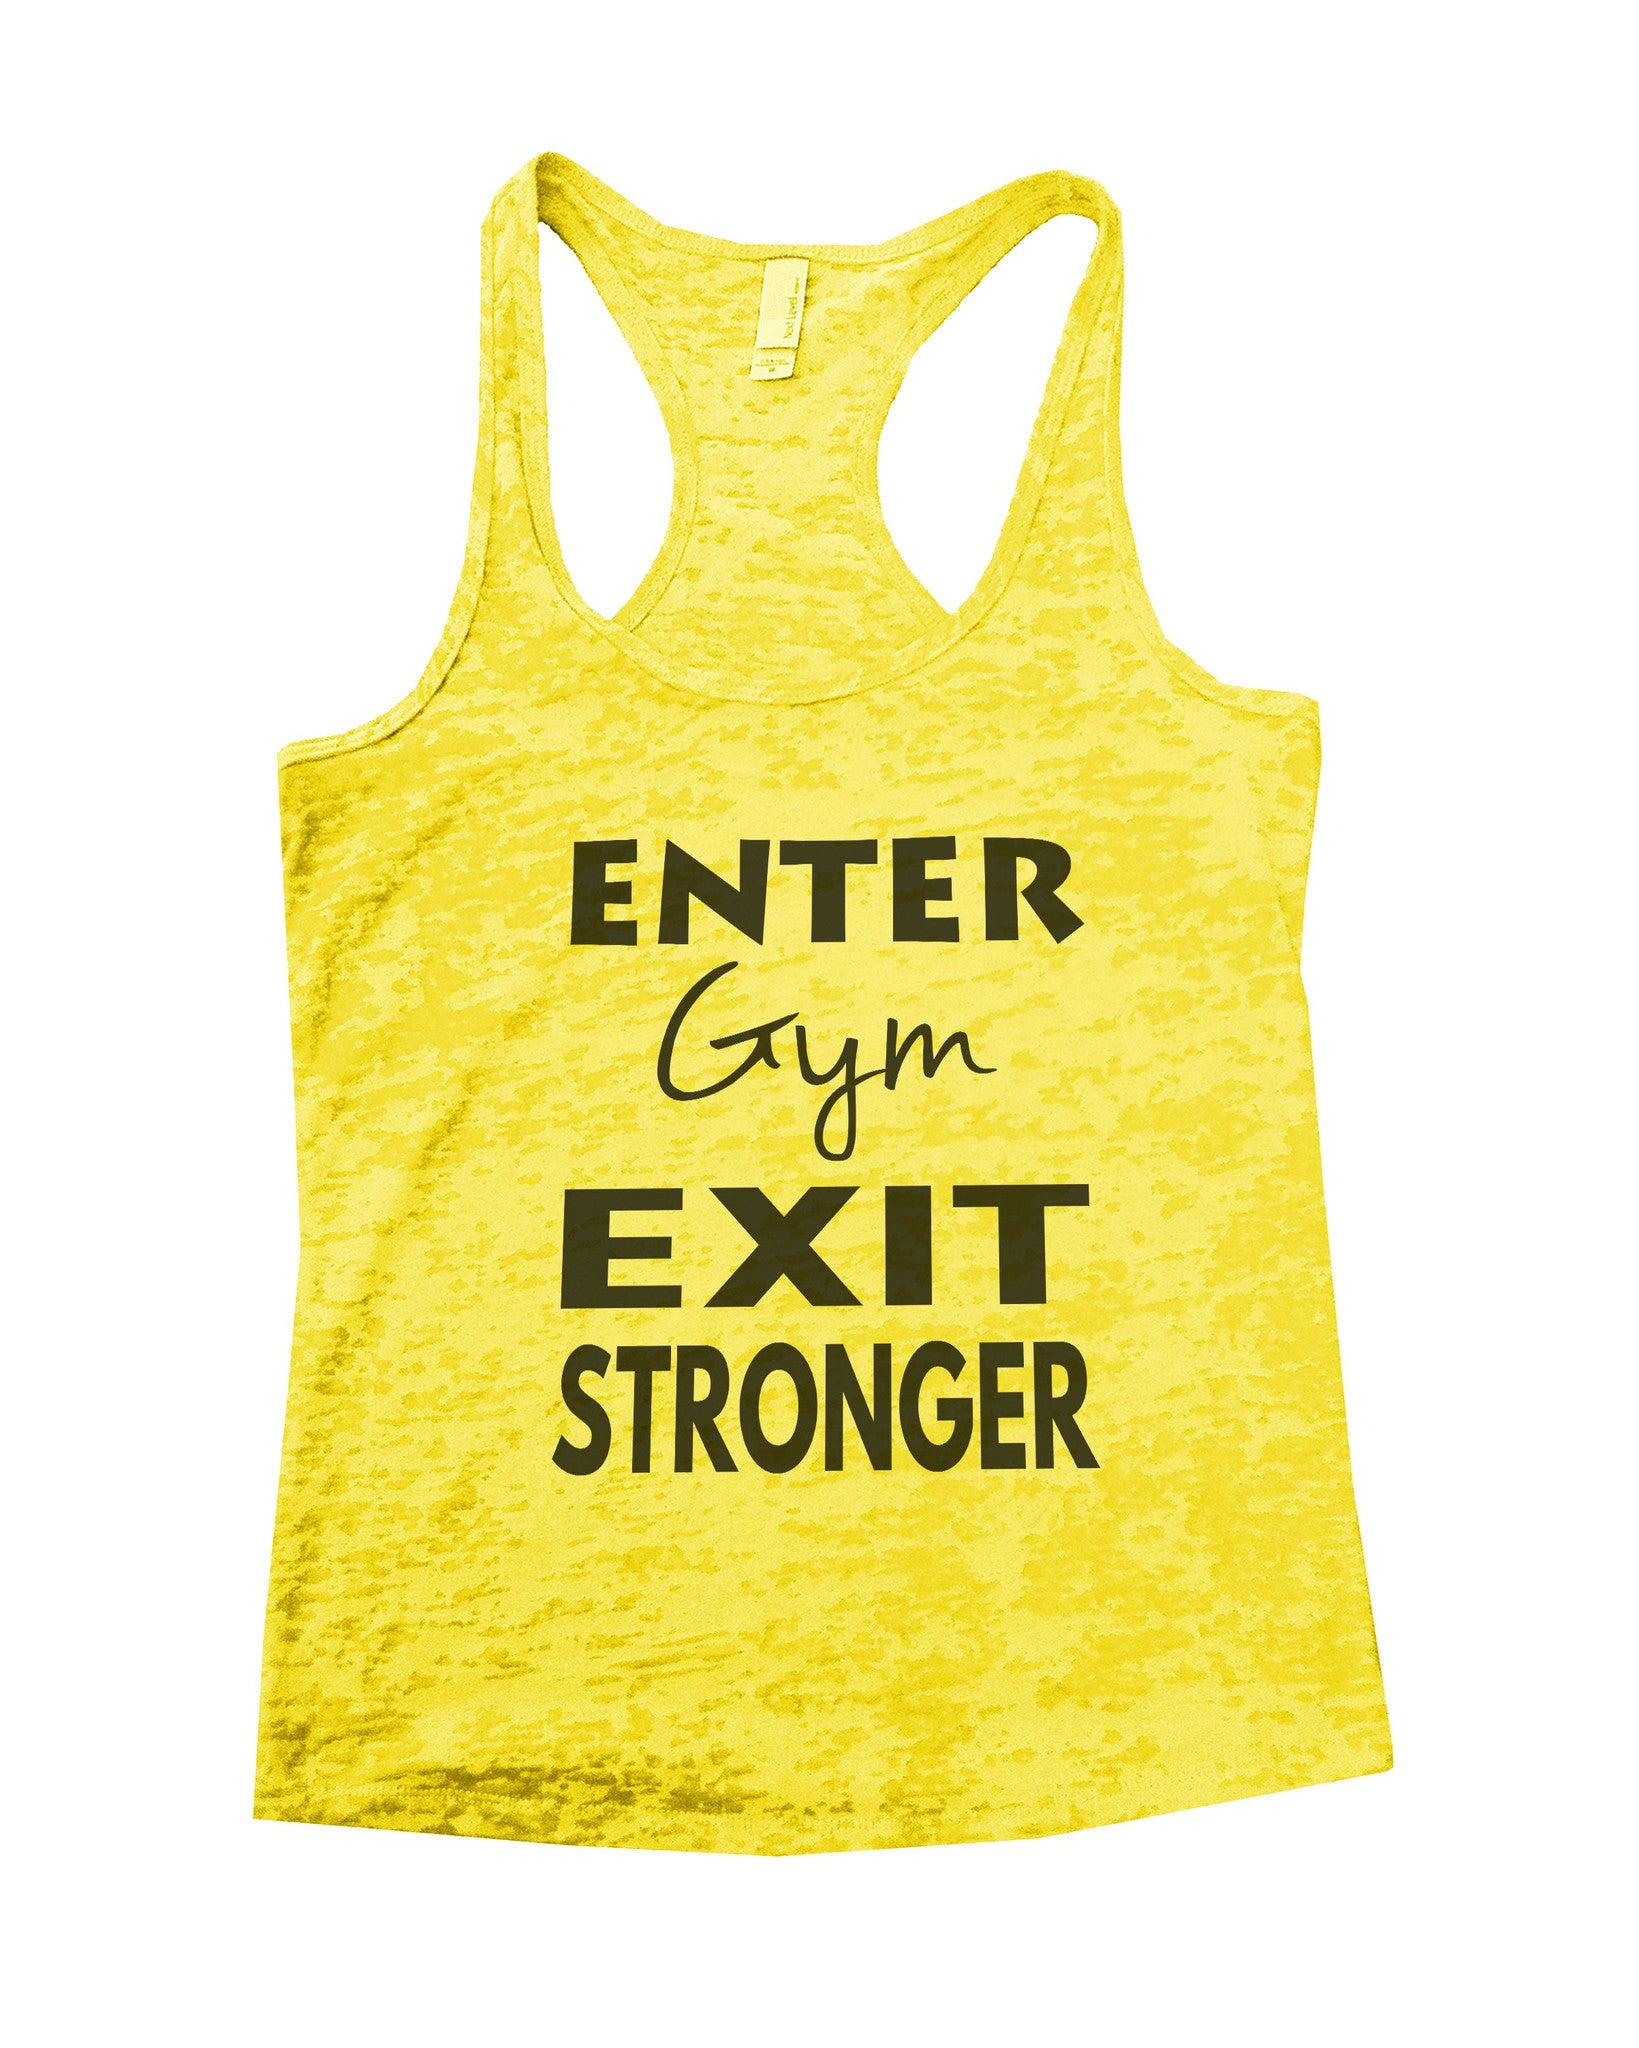 Enter Gym Exit Stronger Burnout Tank Top By BurnoutTankTops.com - 853 - Funny Shirts Tank Tops Burnouts and Triblends  - 7